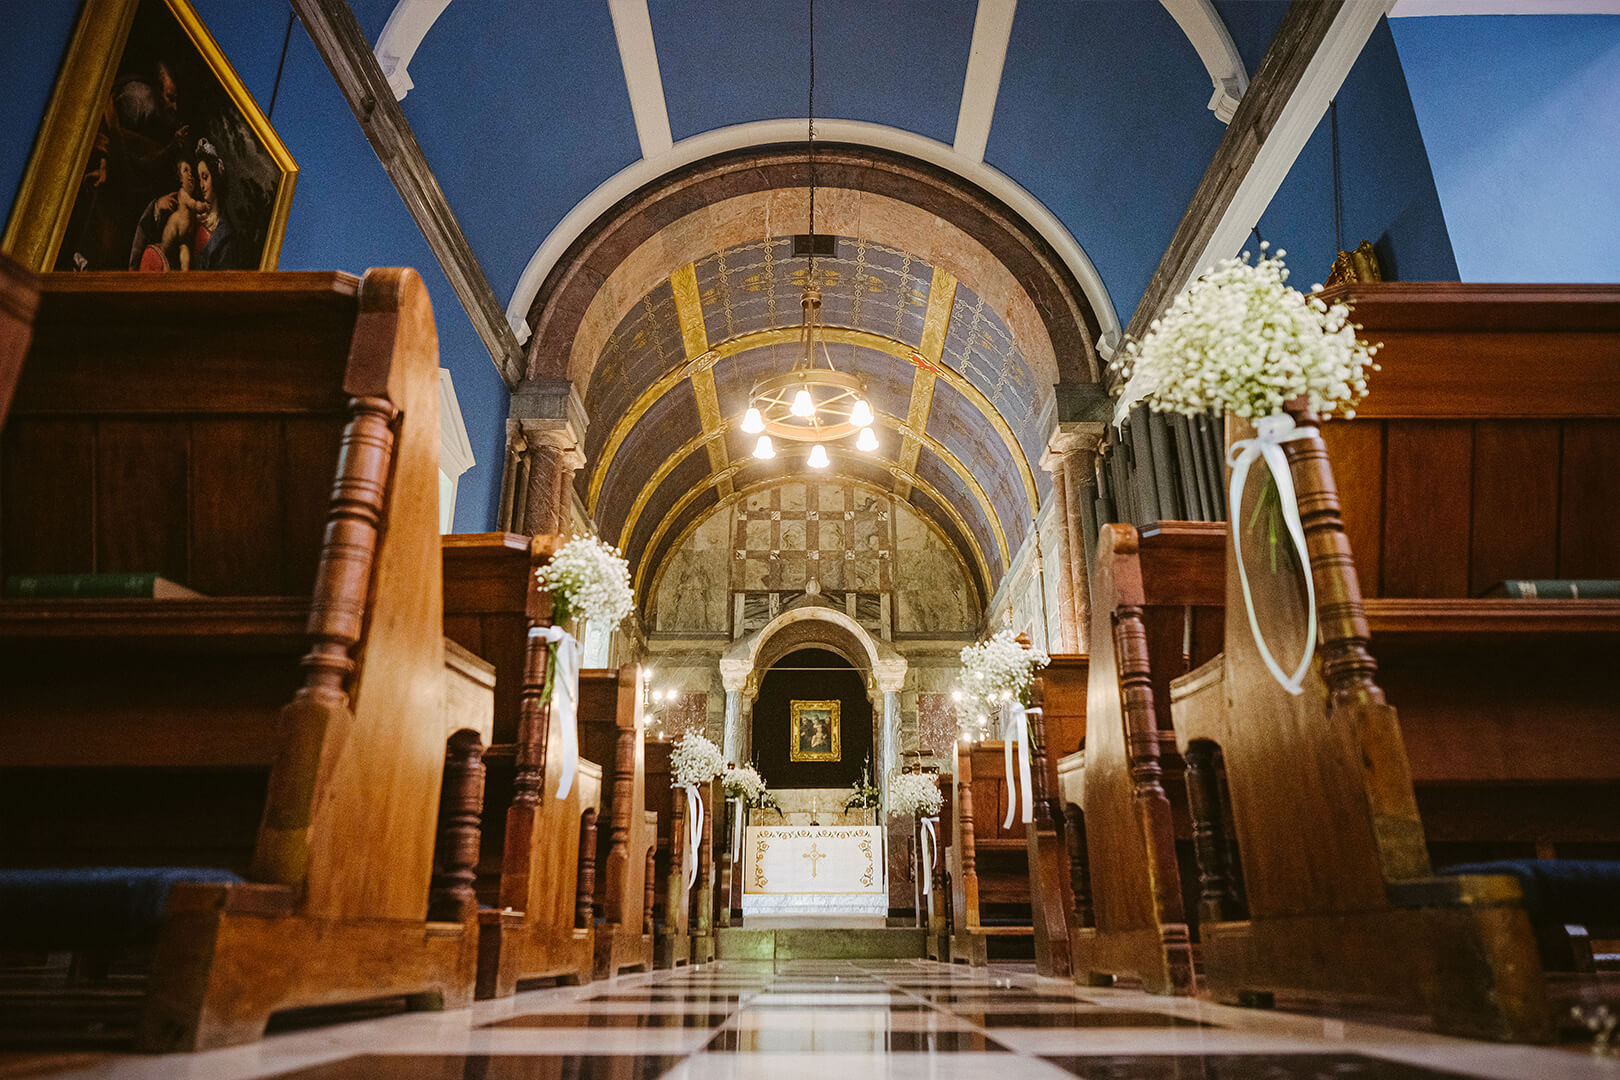 <p>Wynyard Hall is one of the few wedding venues that houses its own chapel. With stained glass windows and Italian marble walls and 19th century organ, it is the most romantic setting for religious weddings.</p>